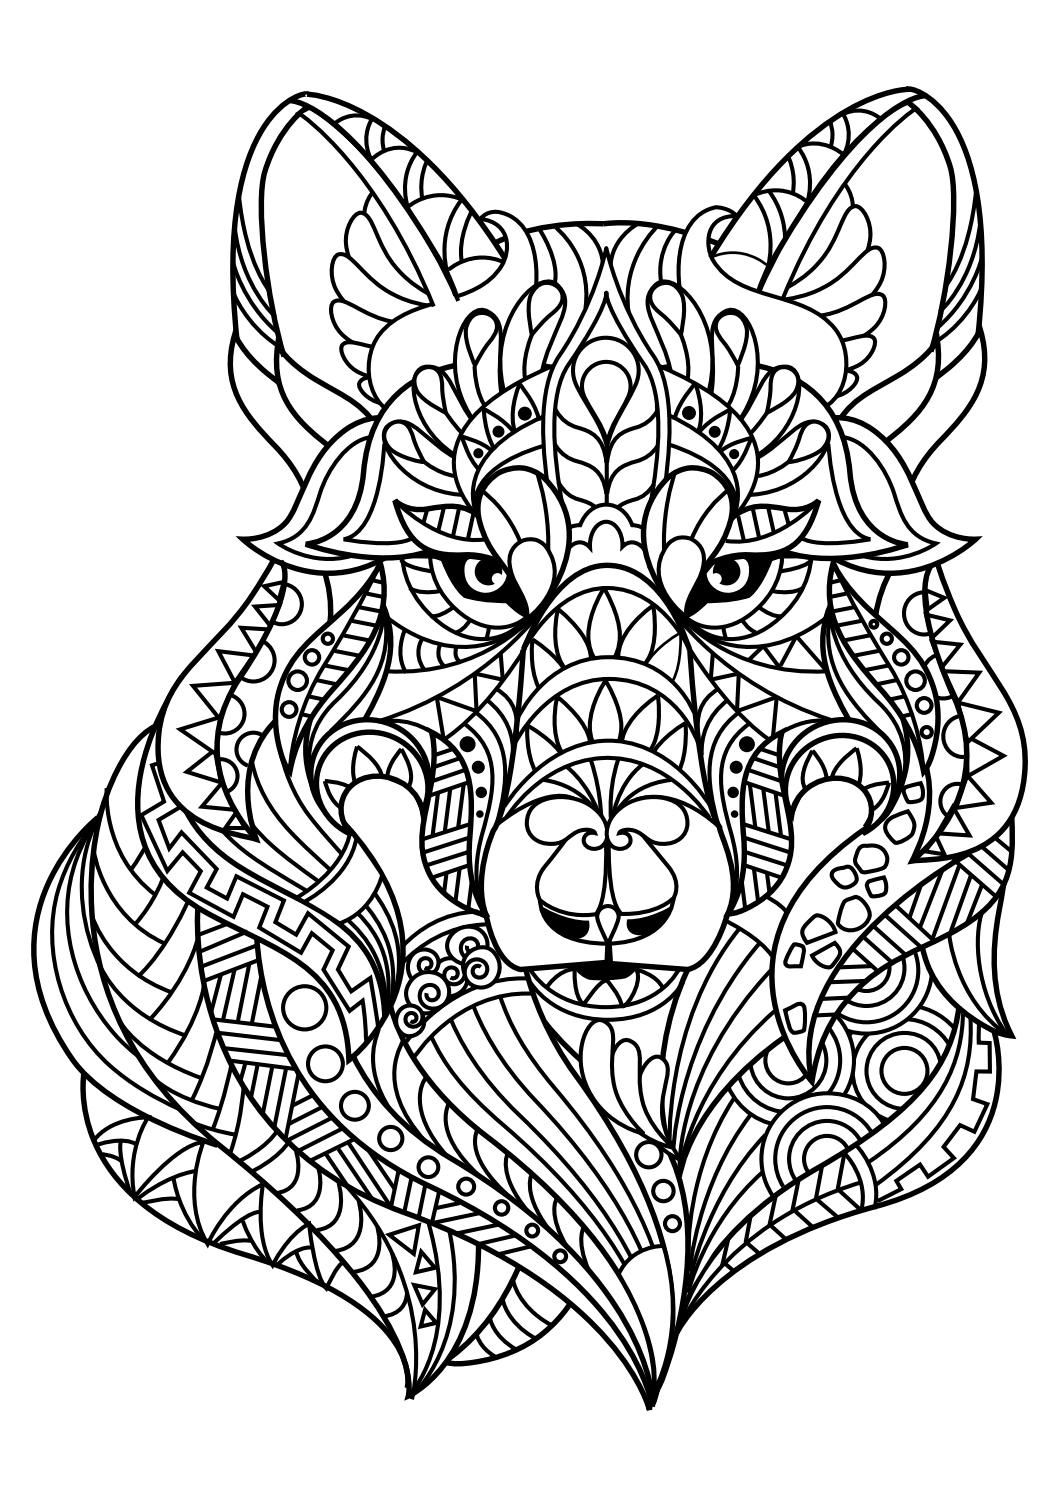 Animal coloring pages pdf | Horse coloring pages, Dog ... | free printable animal mandala coloring pages for adults